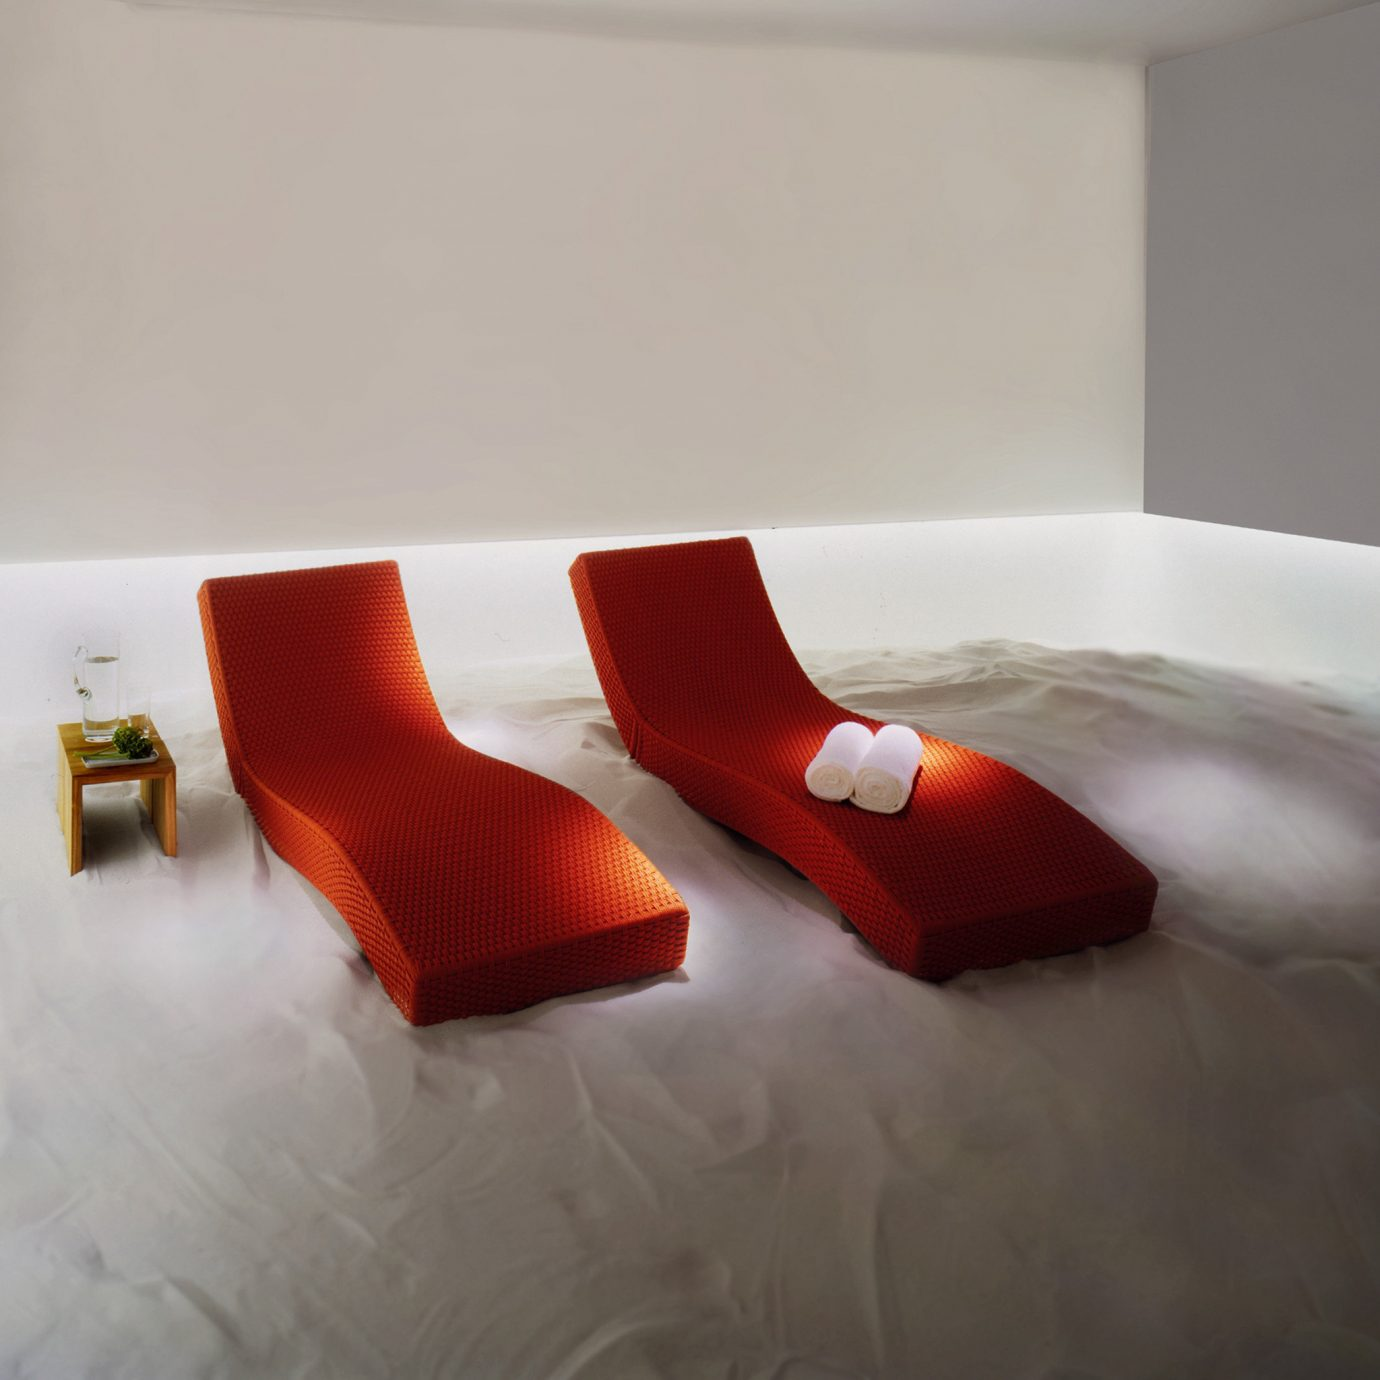 City Modern Spa Wellness red white product flooring pillow